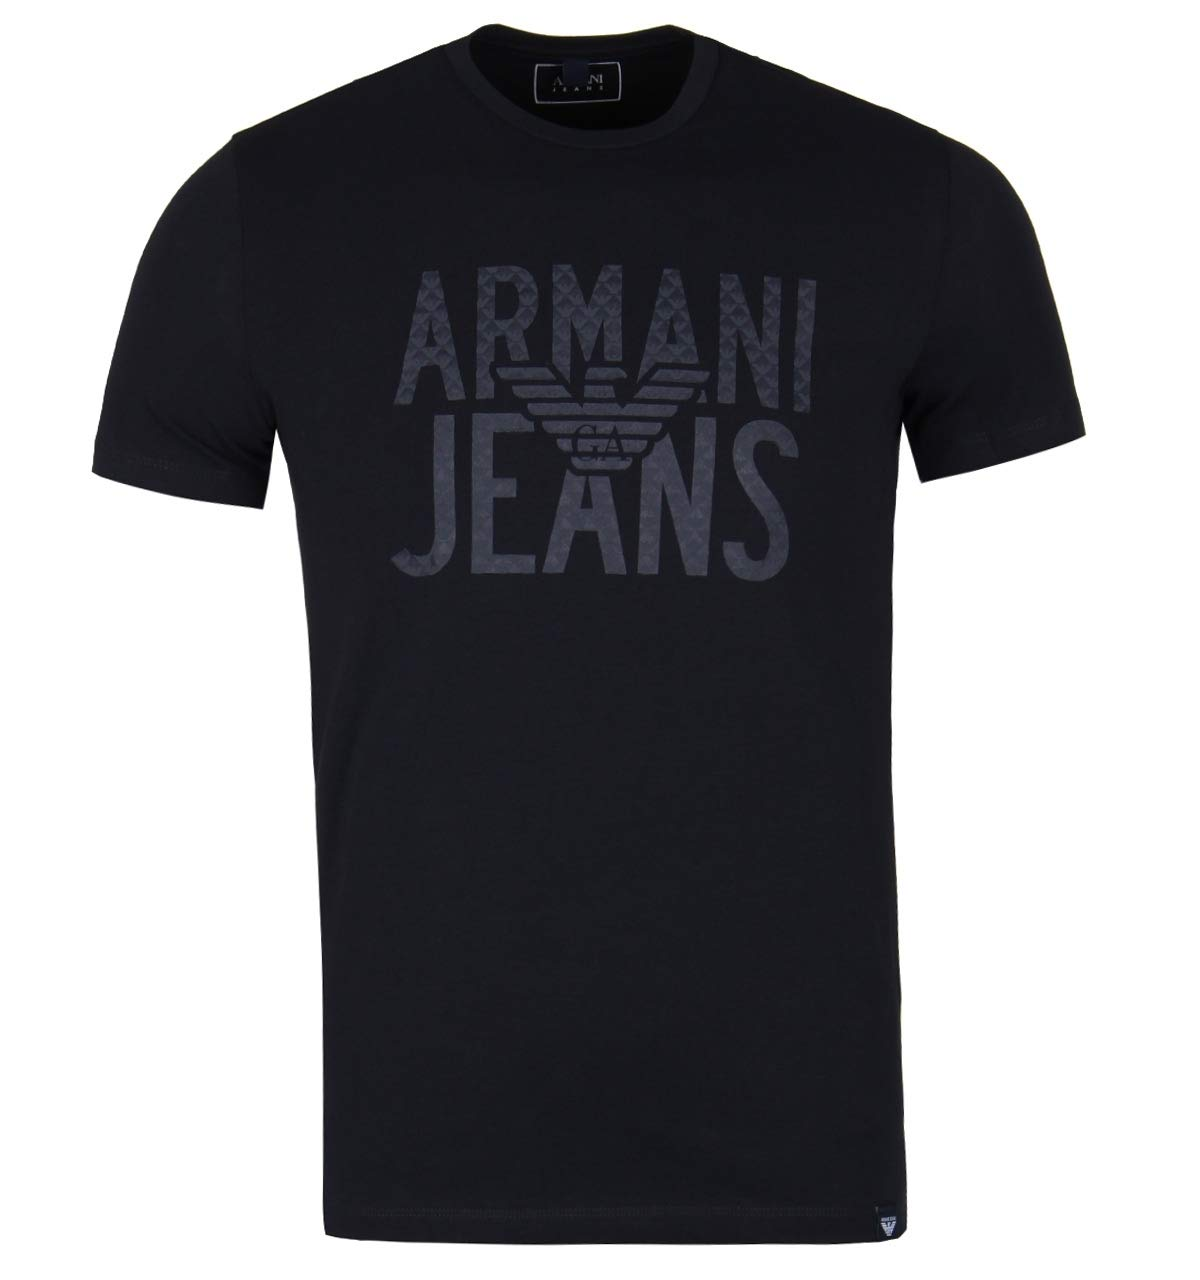 Armani Jeans Navy Eagle Print Logo Short Sleeve T-Shirt-MEDIUM 6Y6T10 6J0AZ